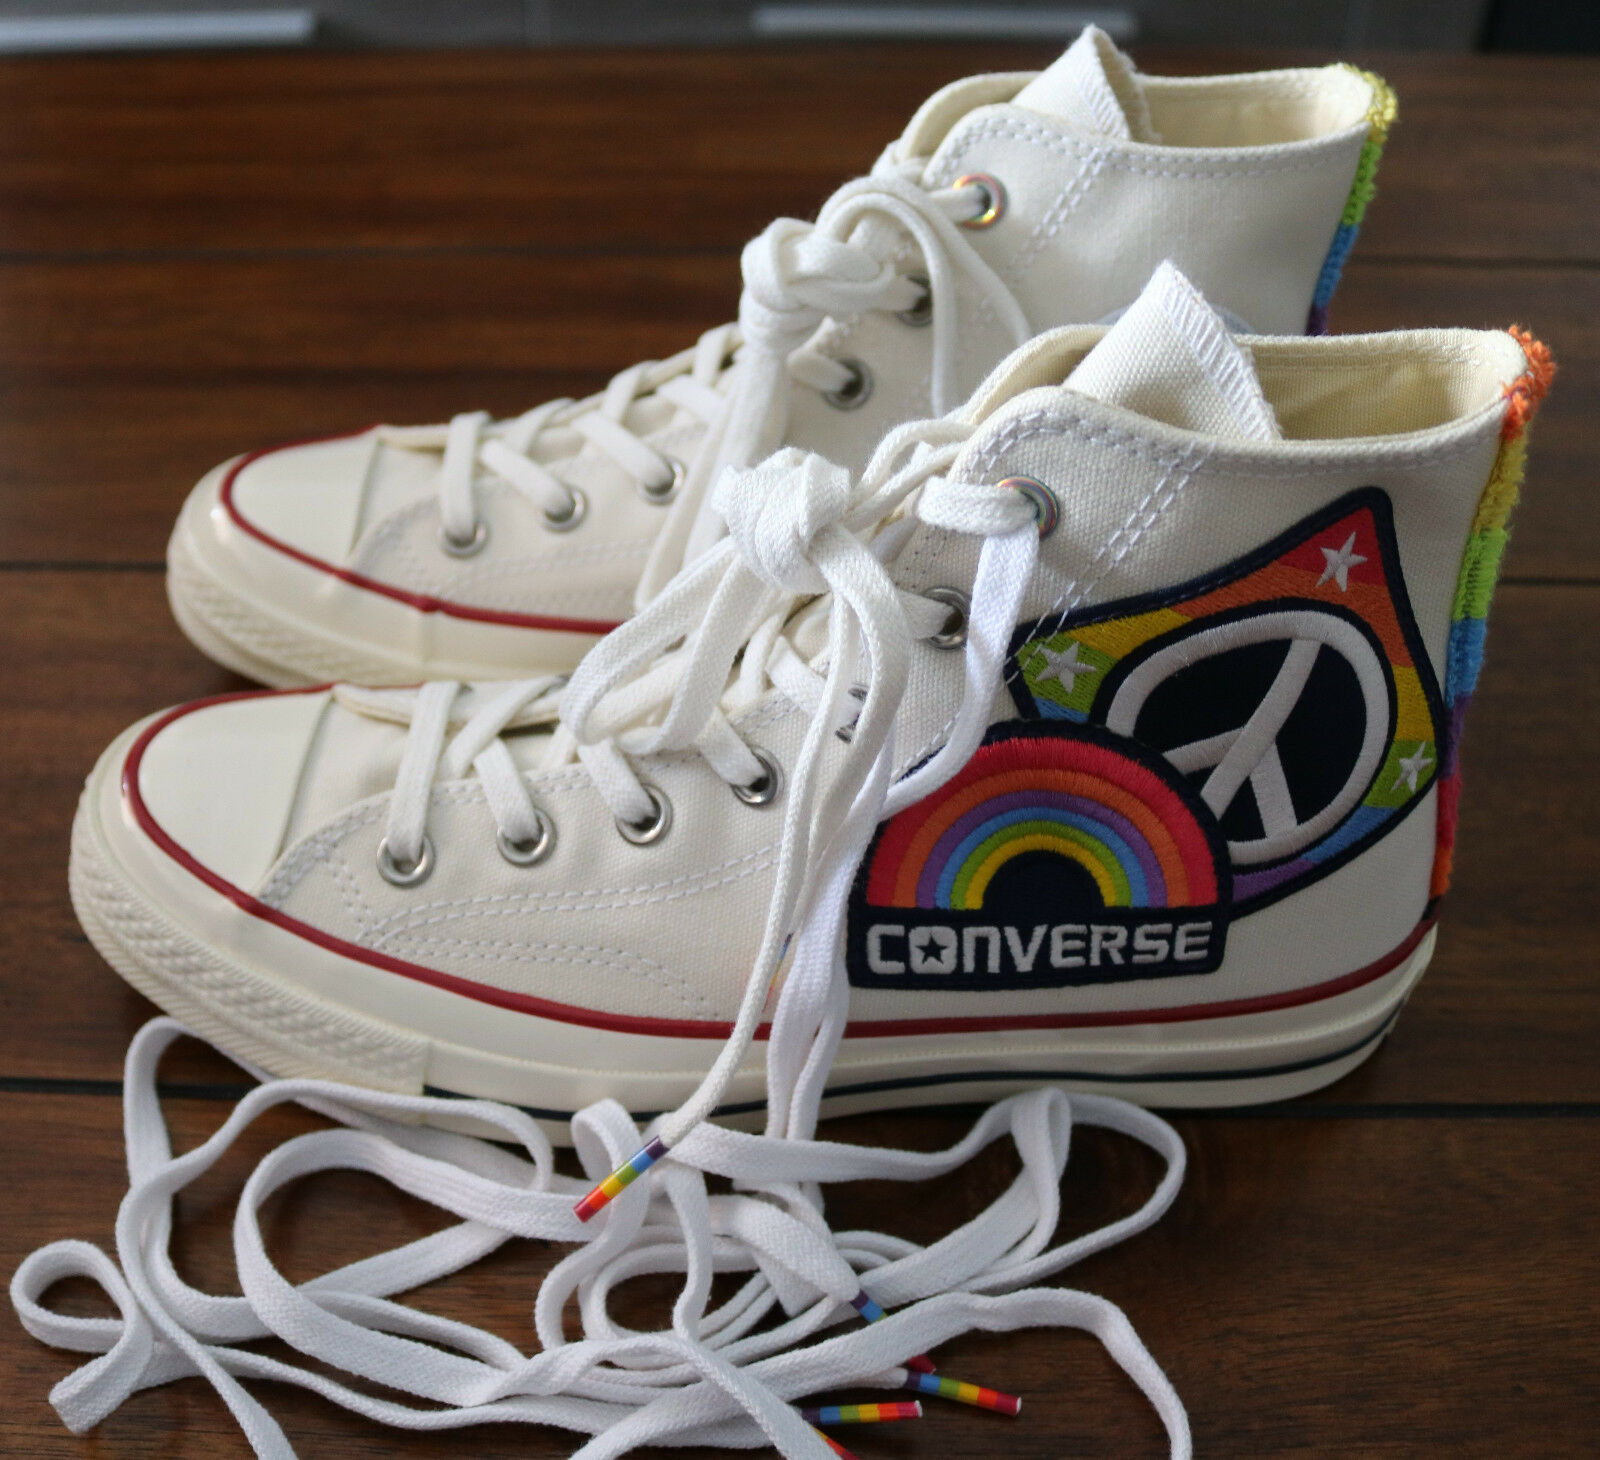 Converse Chuck Taylor All Star AS 70 Hi Pride Parade Rainbow 158420C Unisex